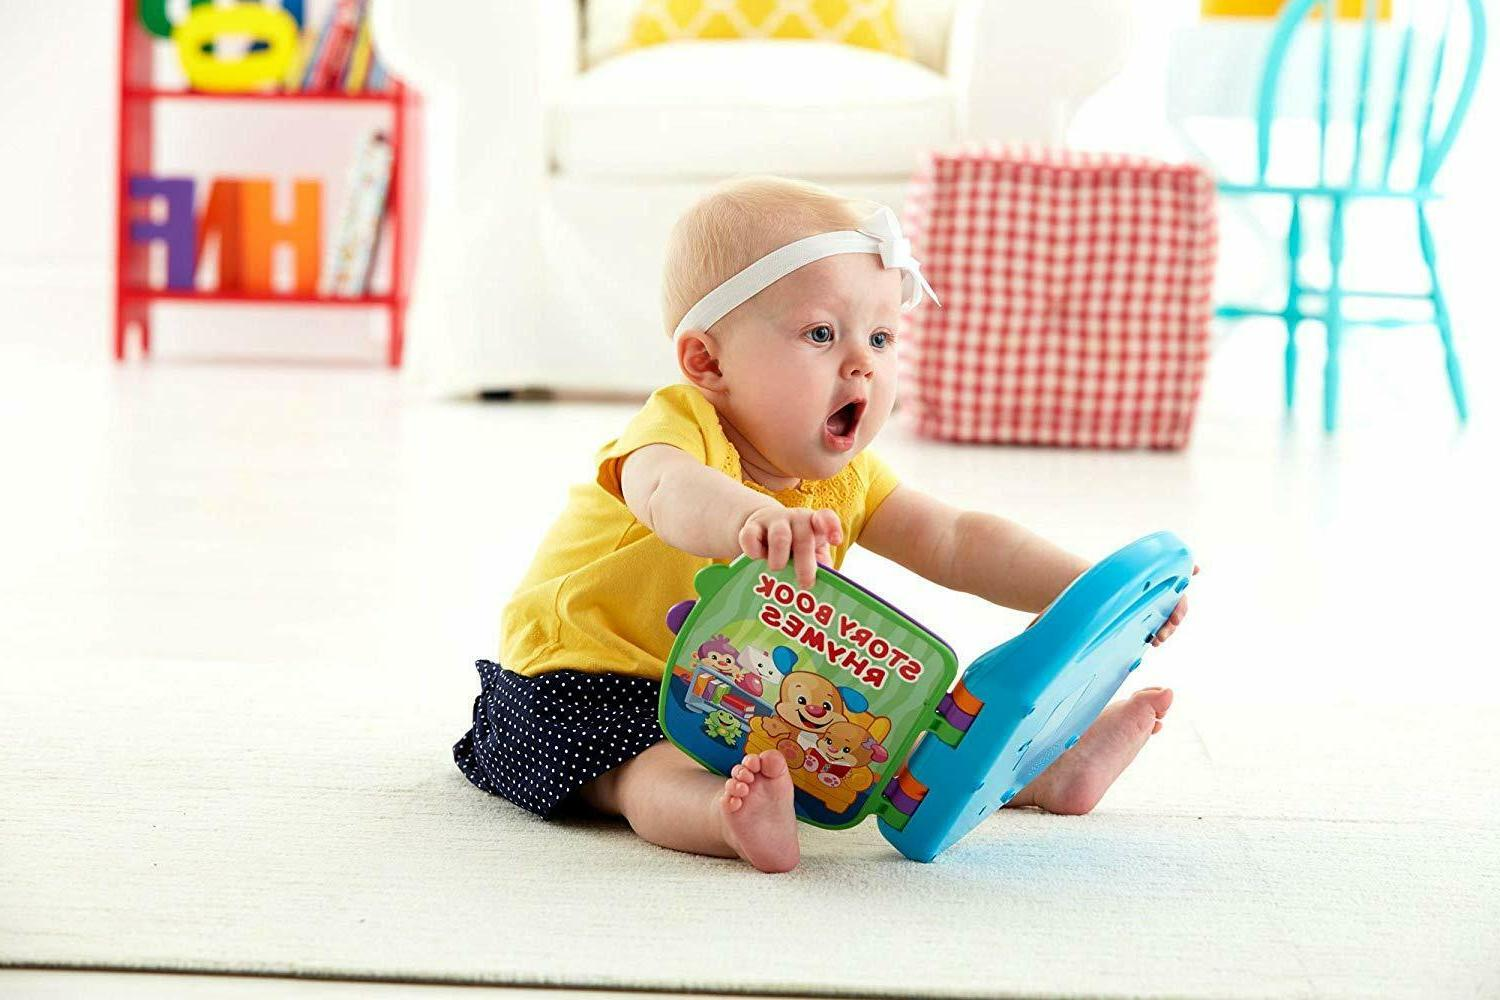 Educational Learning Toys Toddlers Kids 6 Months Age Year Girl